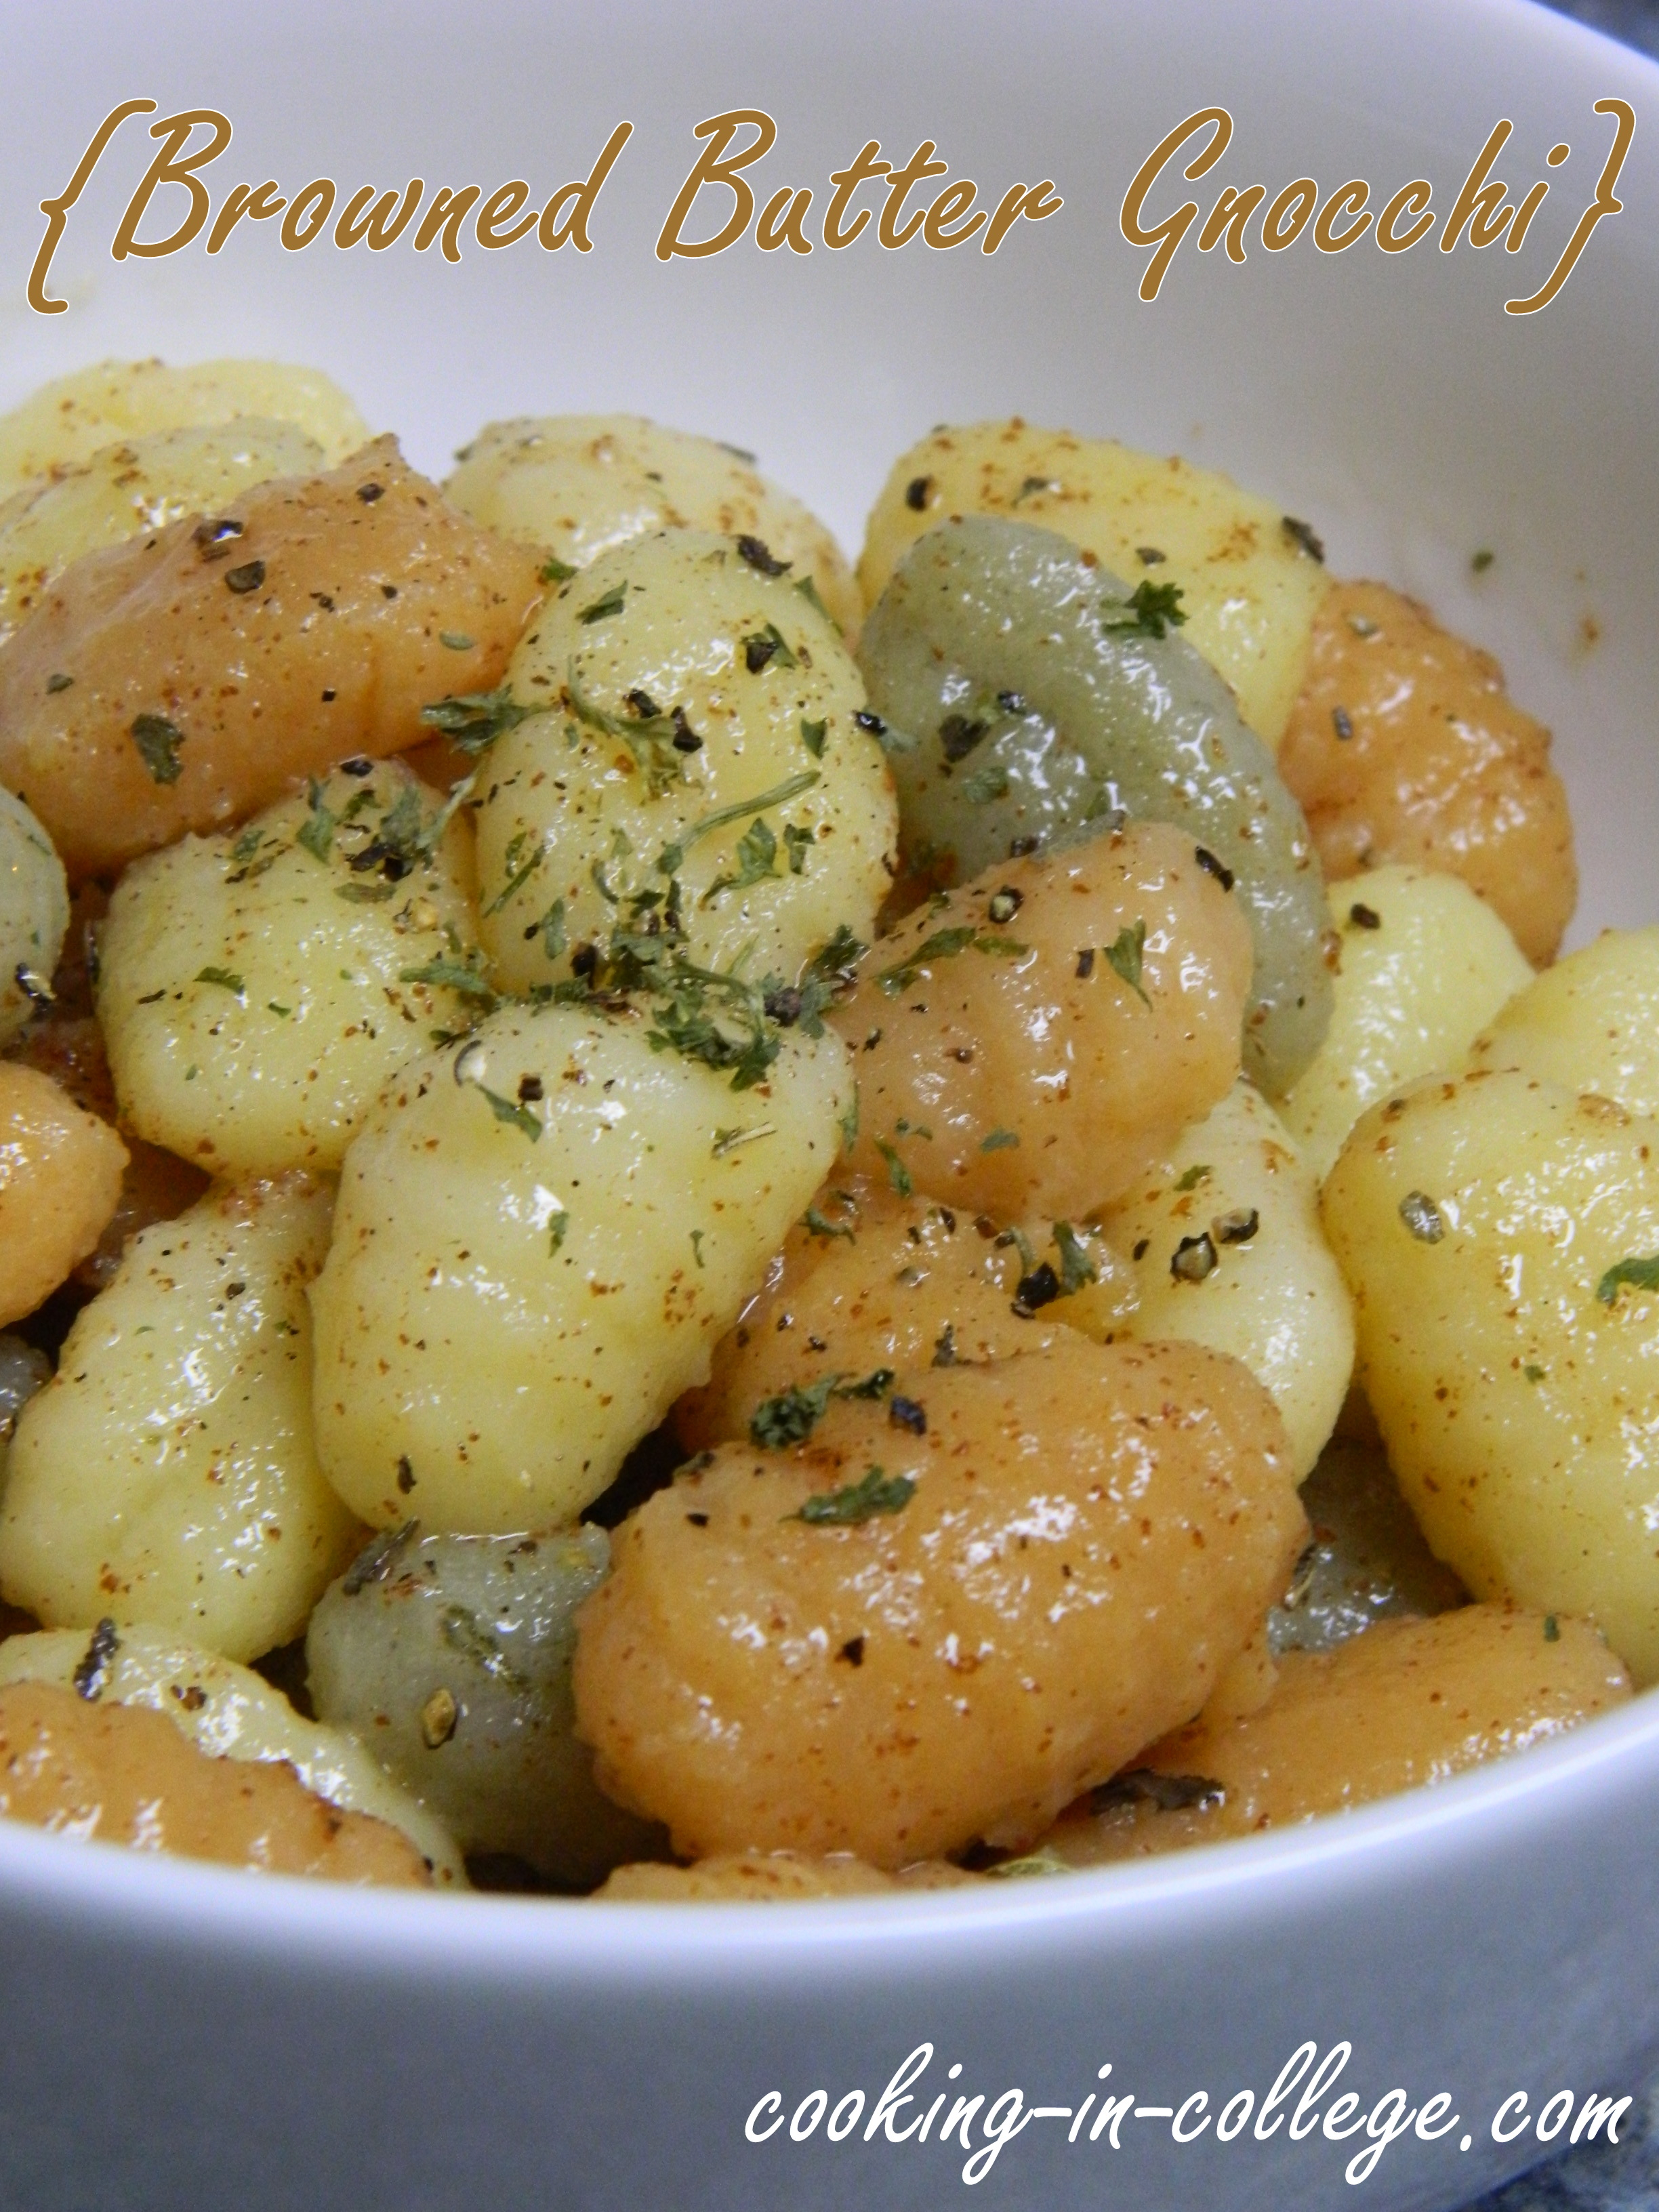 Browned Butter Gnocchi - Cooking in College